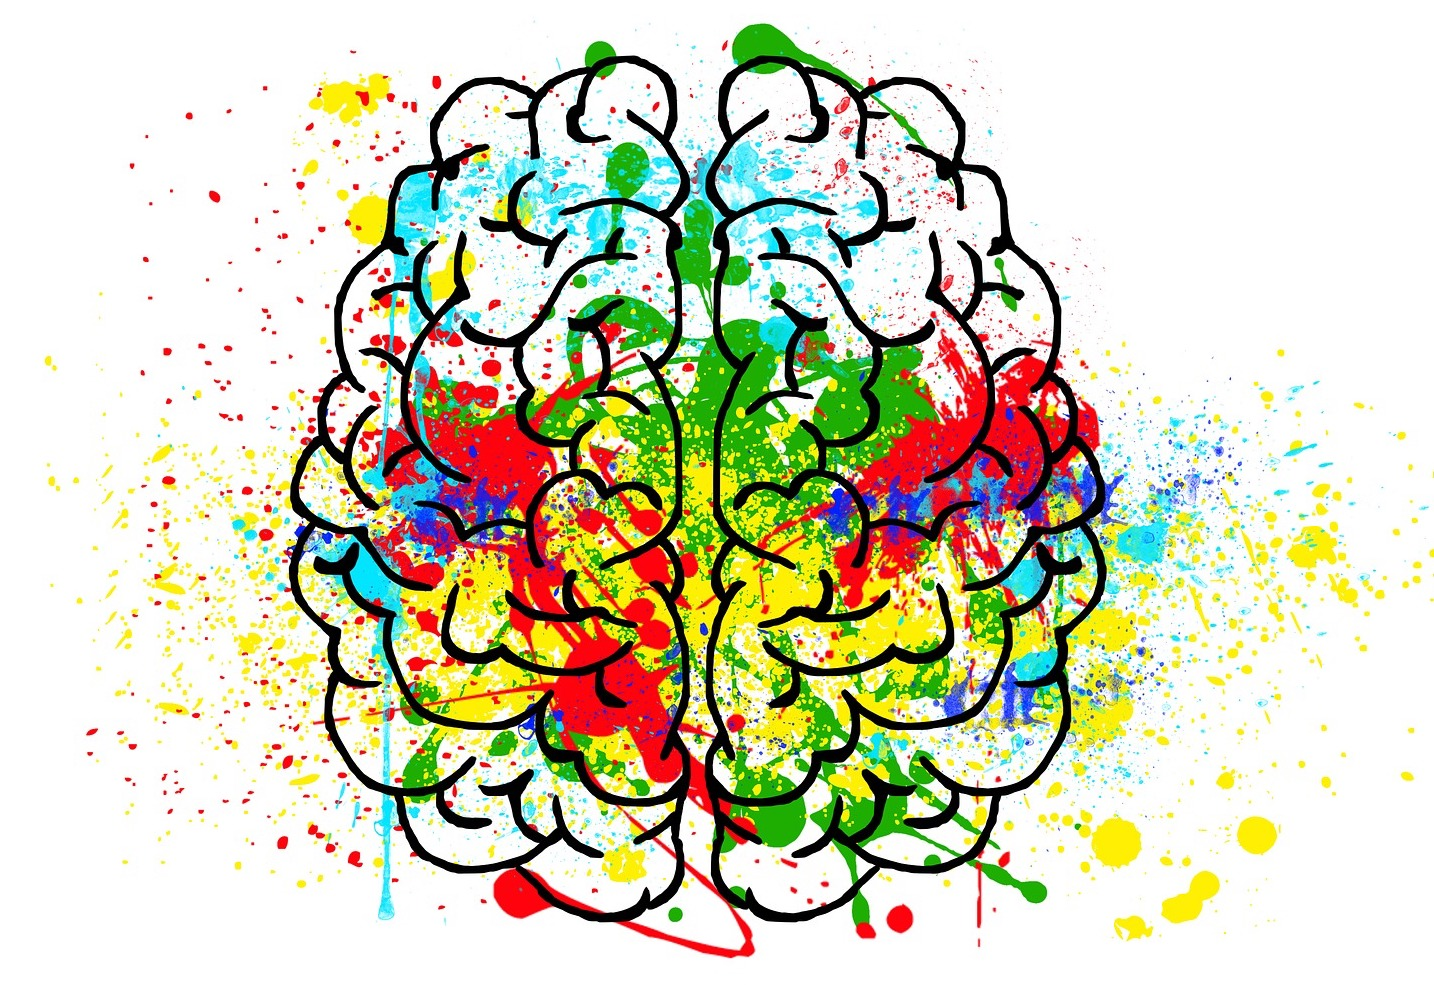 Line drawing of a brain with colorful paint splotches over it